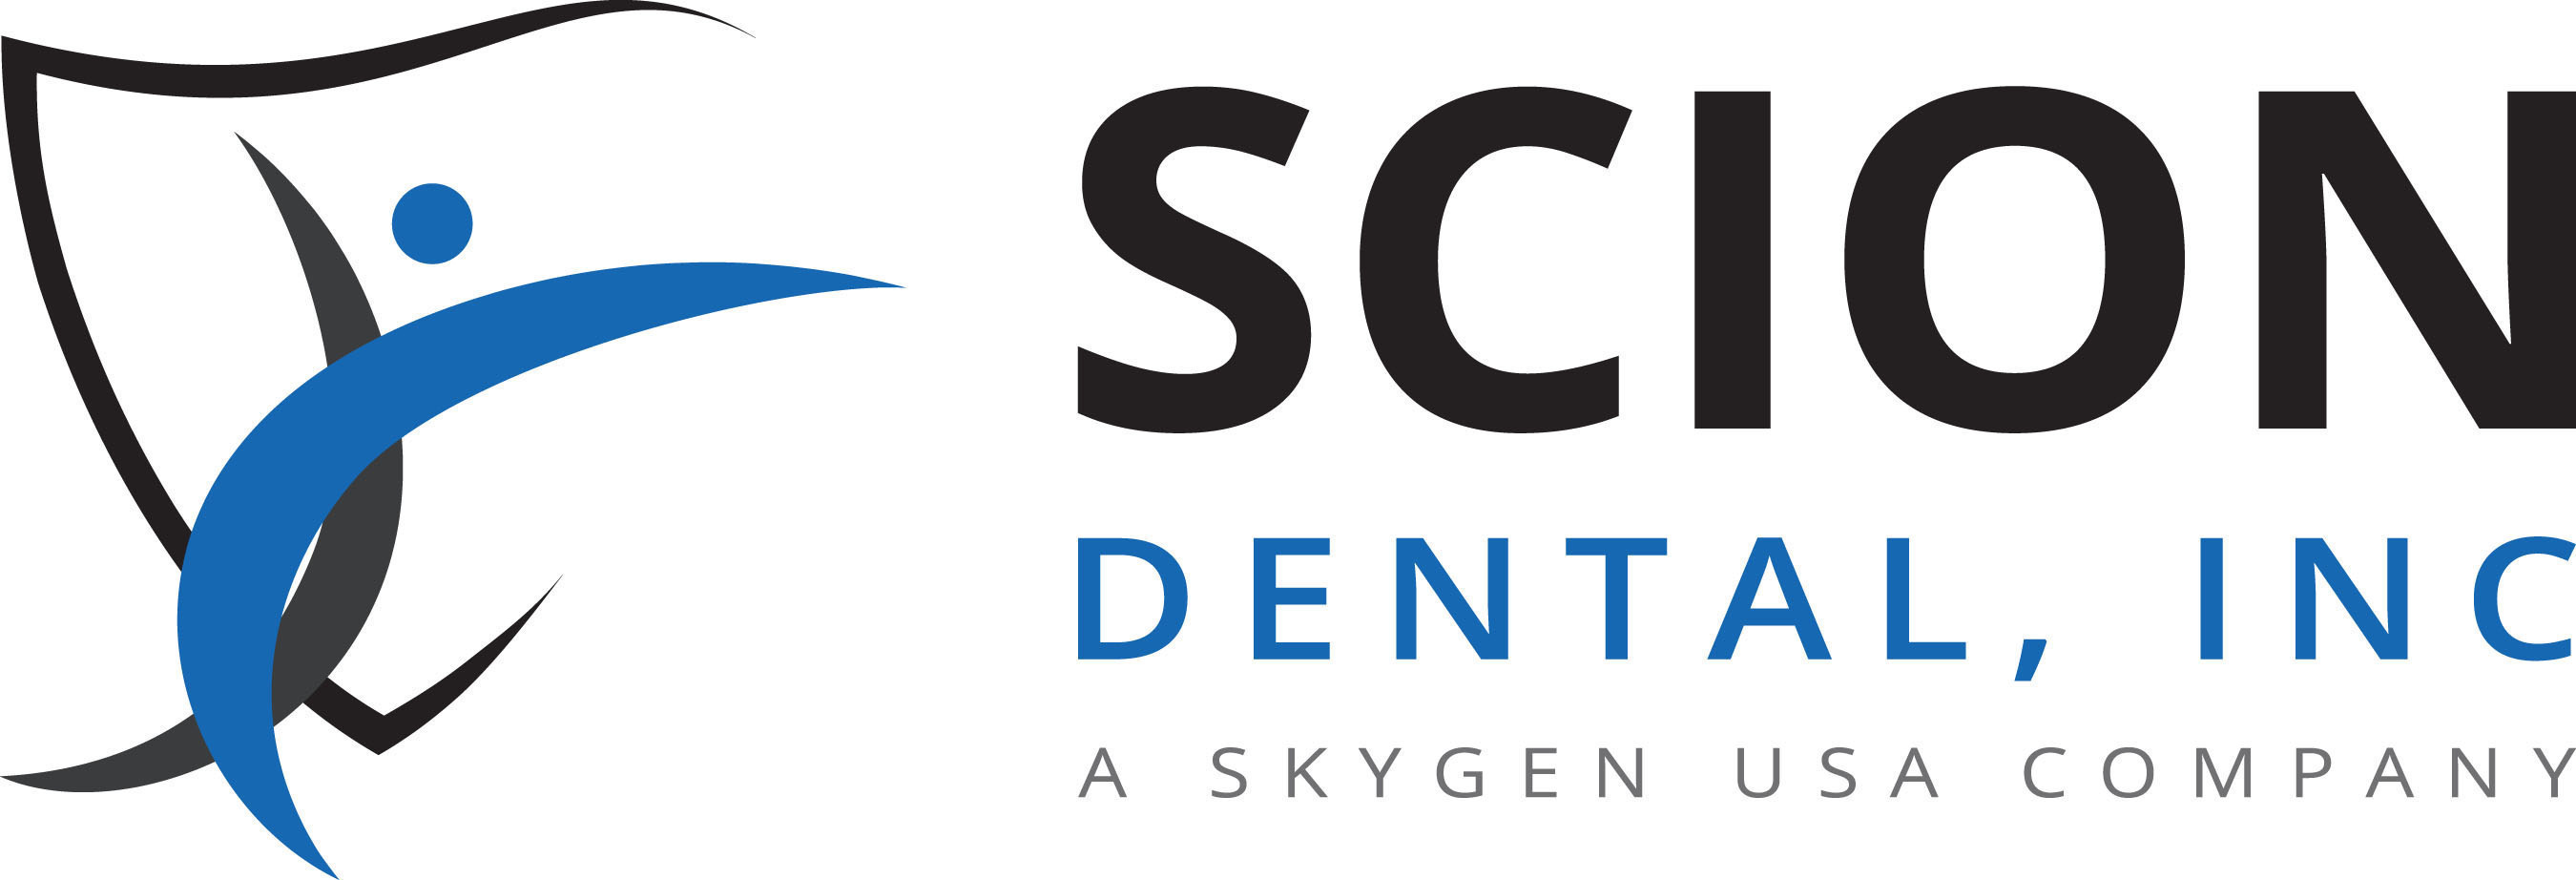 Scion Dental is a distinguished, world-class dental administration company focused on bringing next-generation ...